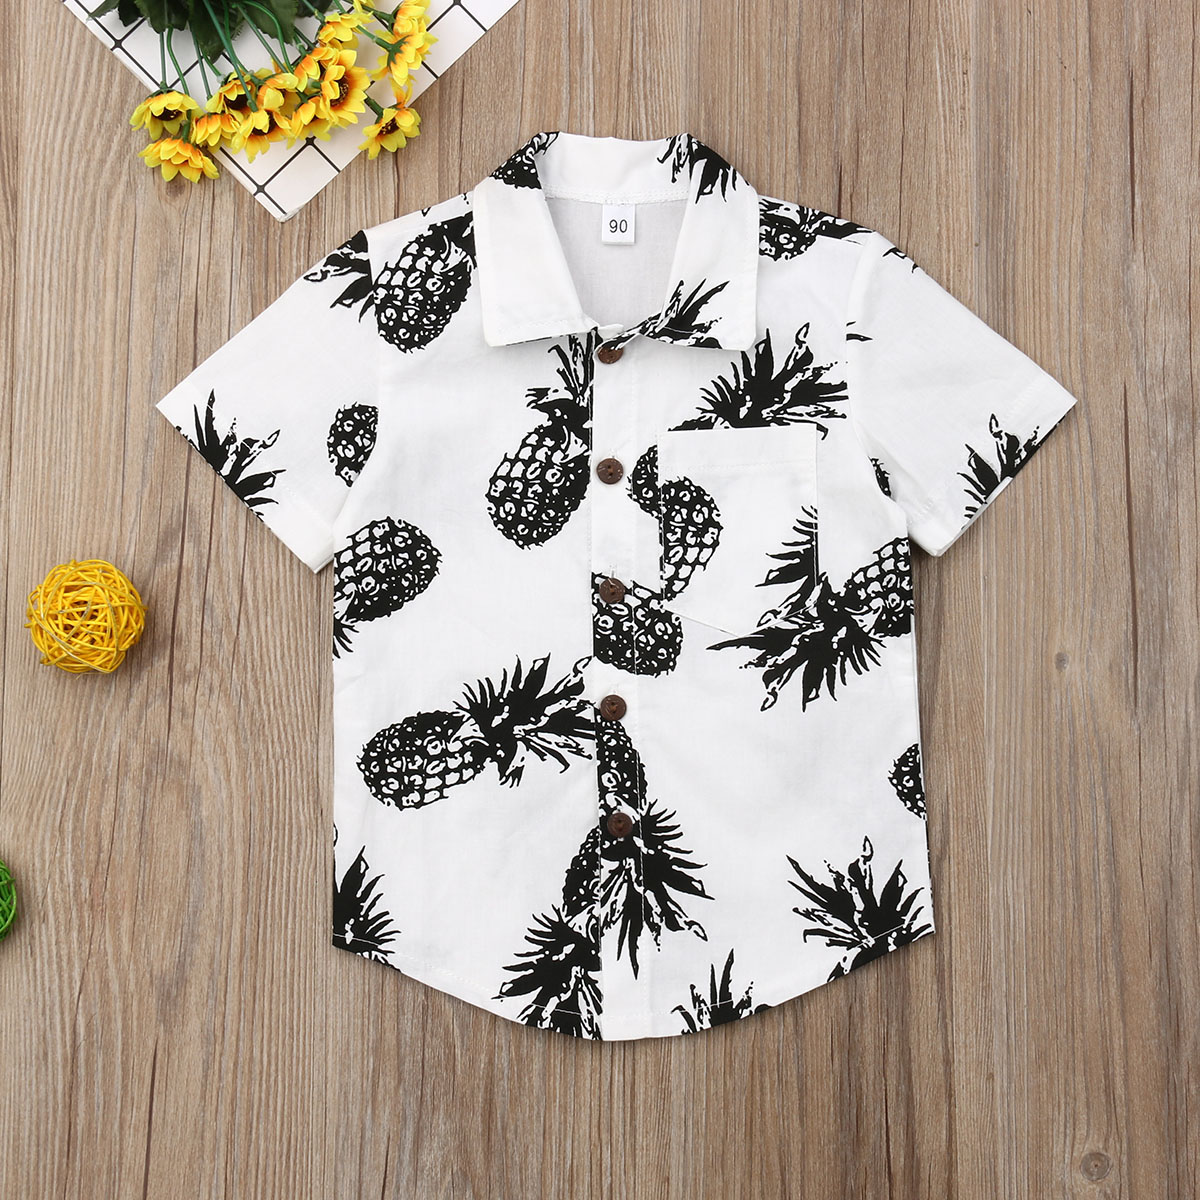 Pudcoco Summer Toddler Baby Boy Clothes Pineapple Print Short Sleeve Shirt Summer Holiday Casual T-Shirt Clothes